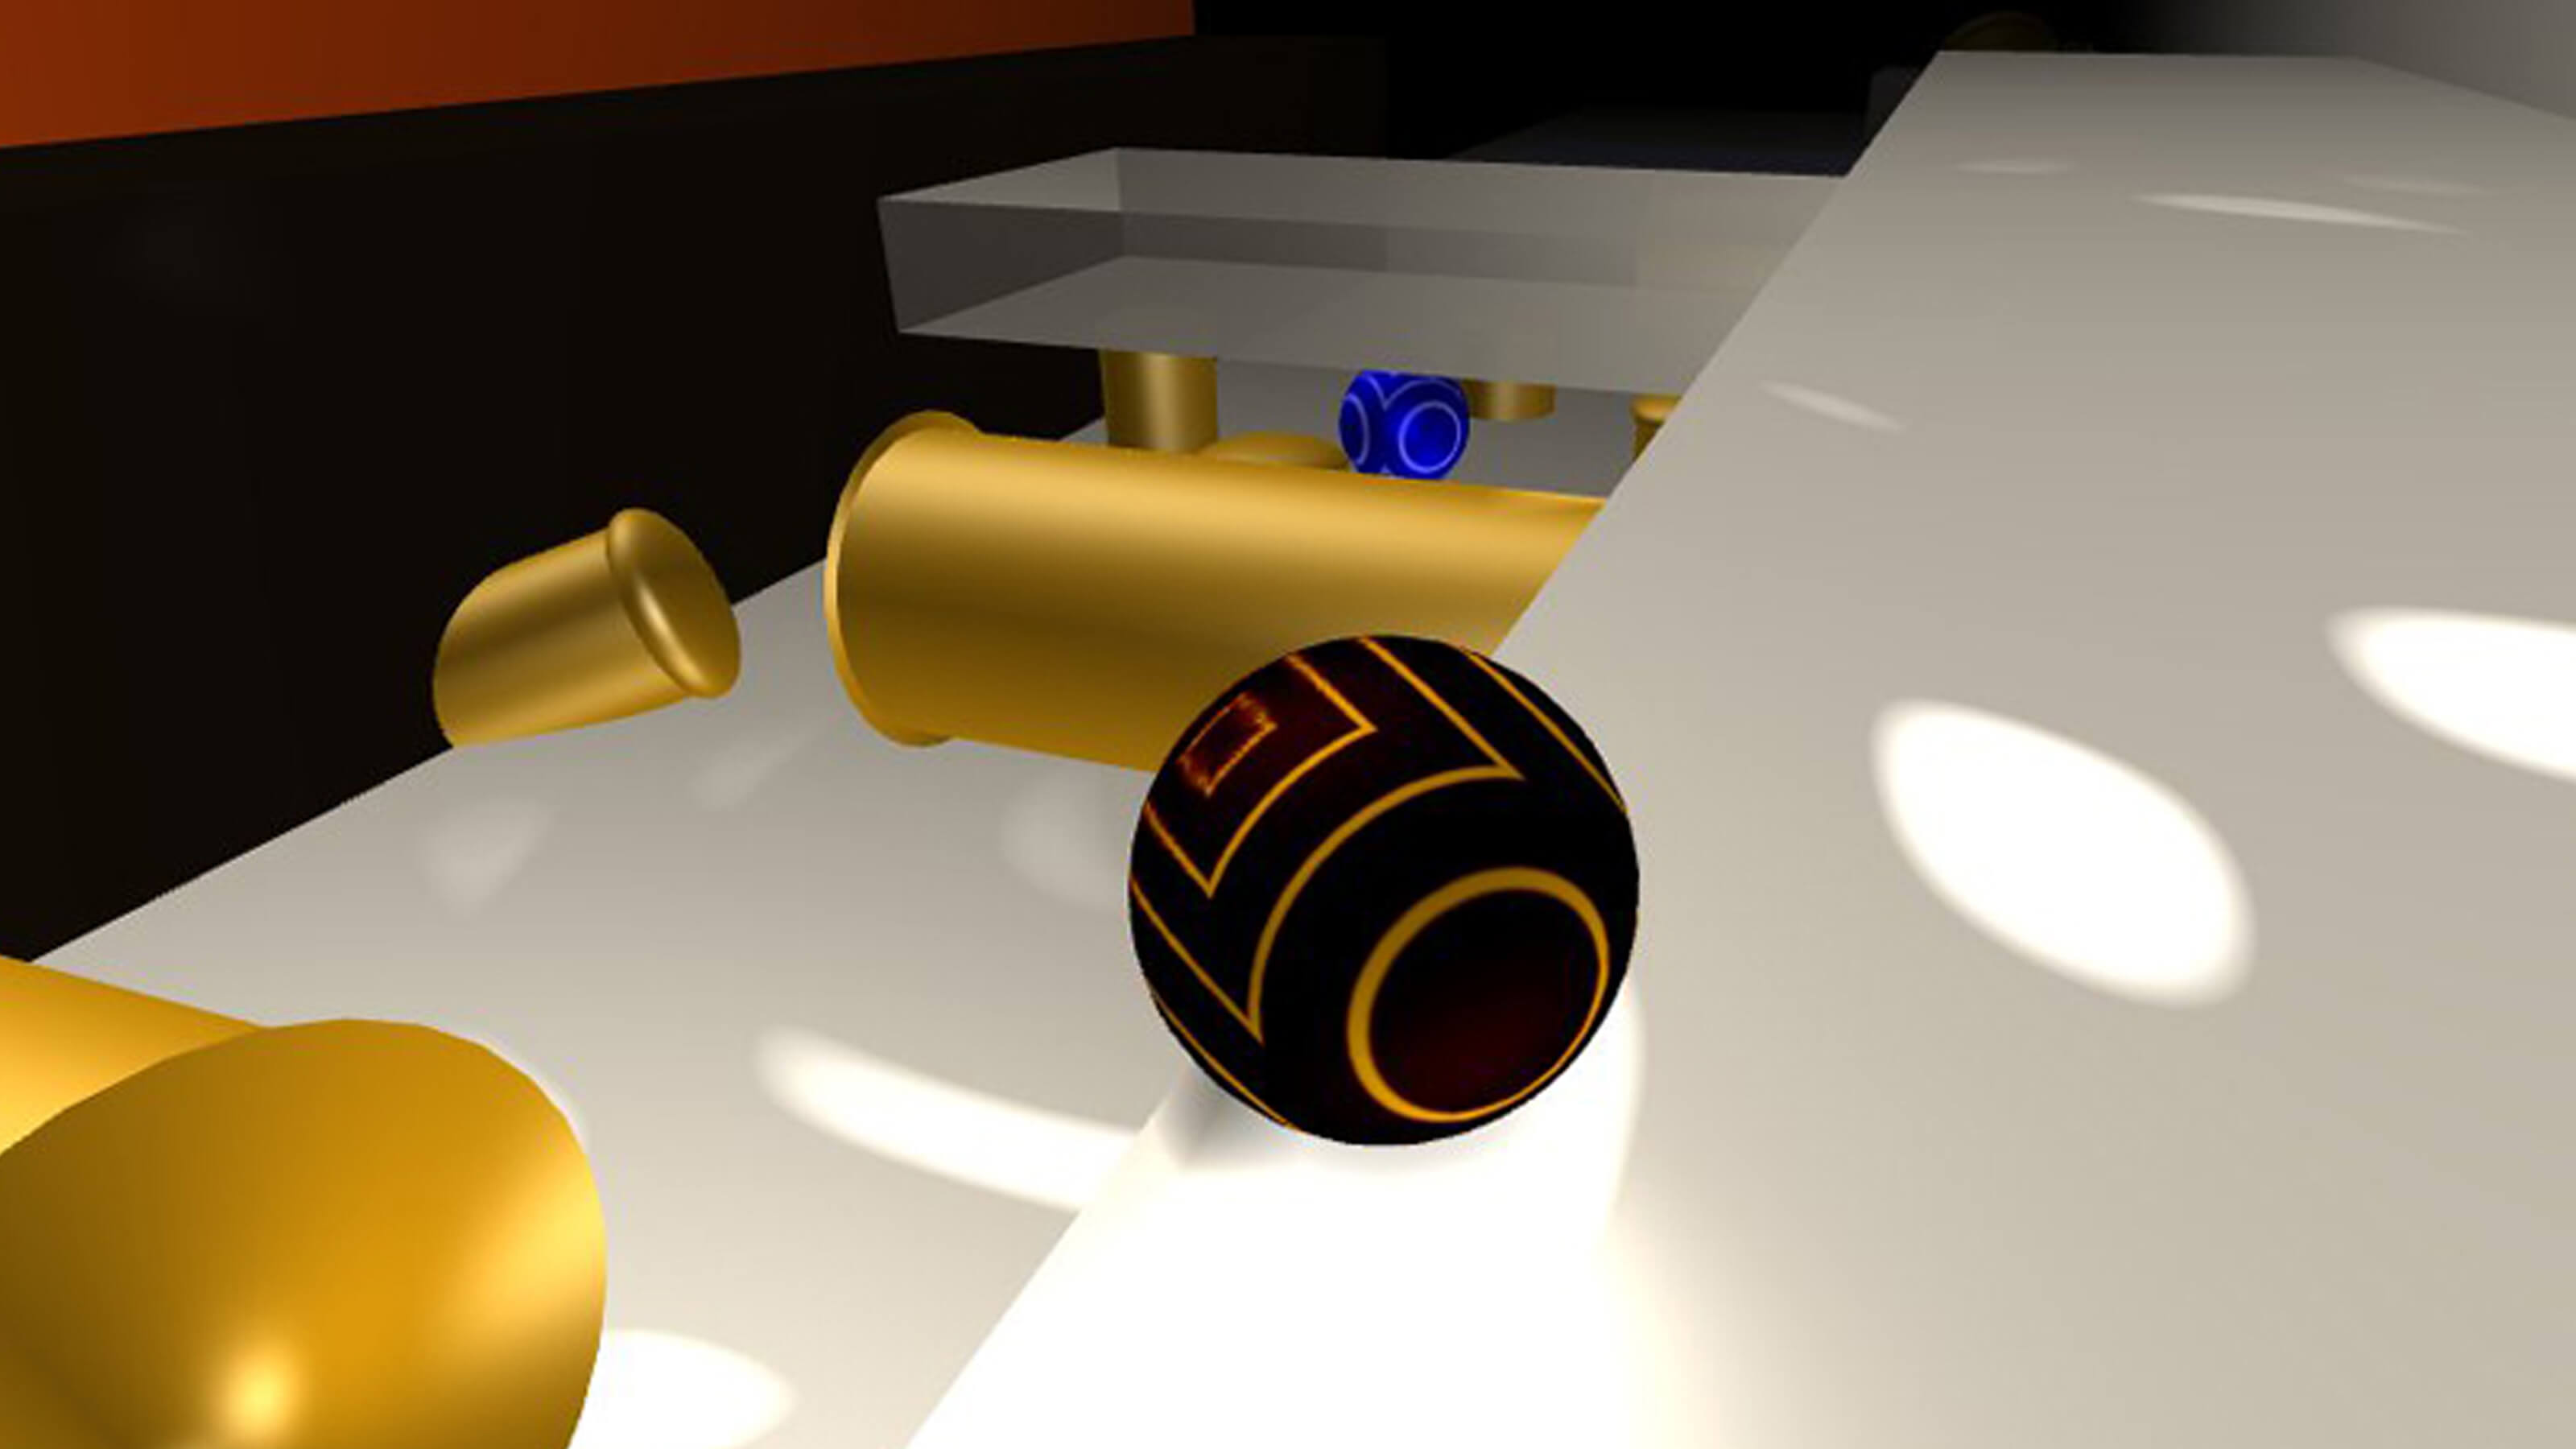 A black ball sits on a white plane with gold tubes below it and a blue ball in the distance.